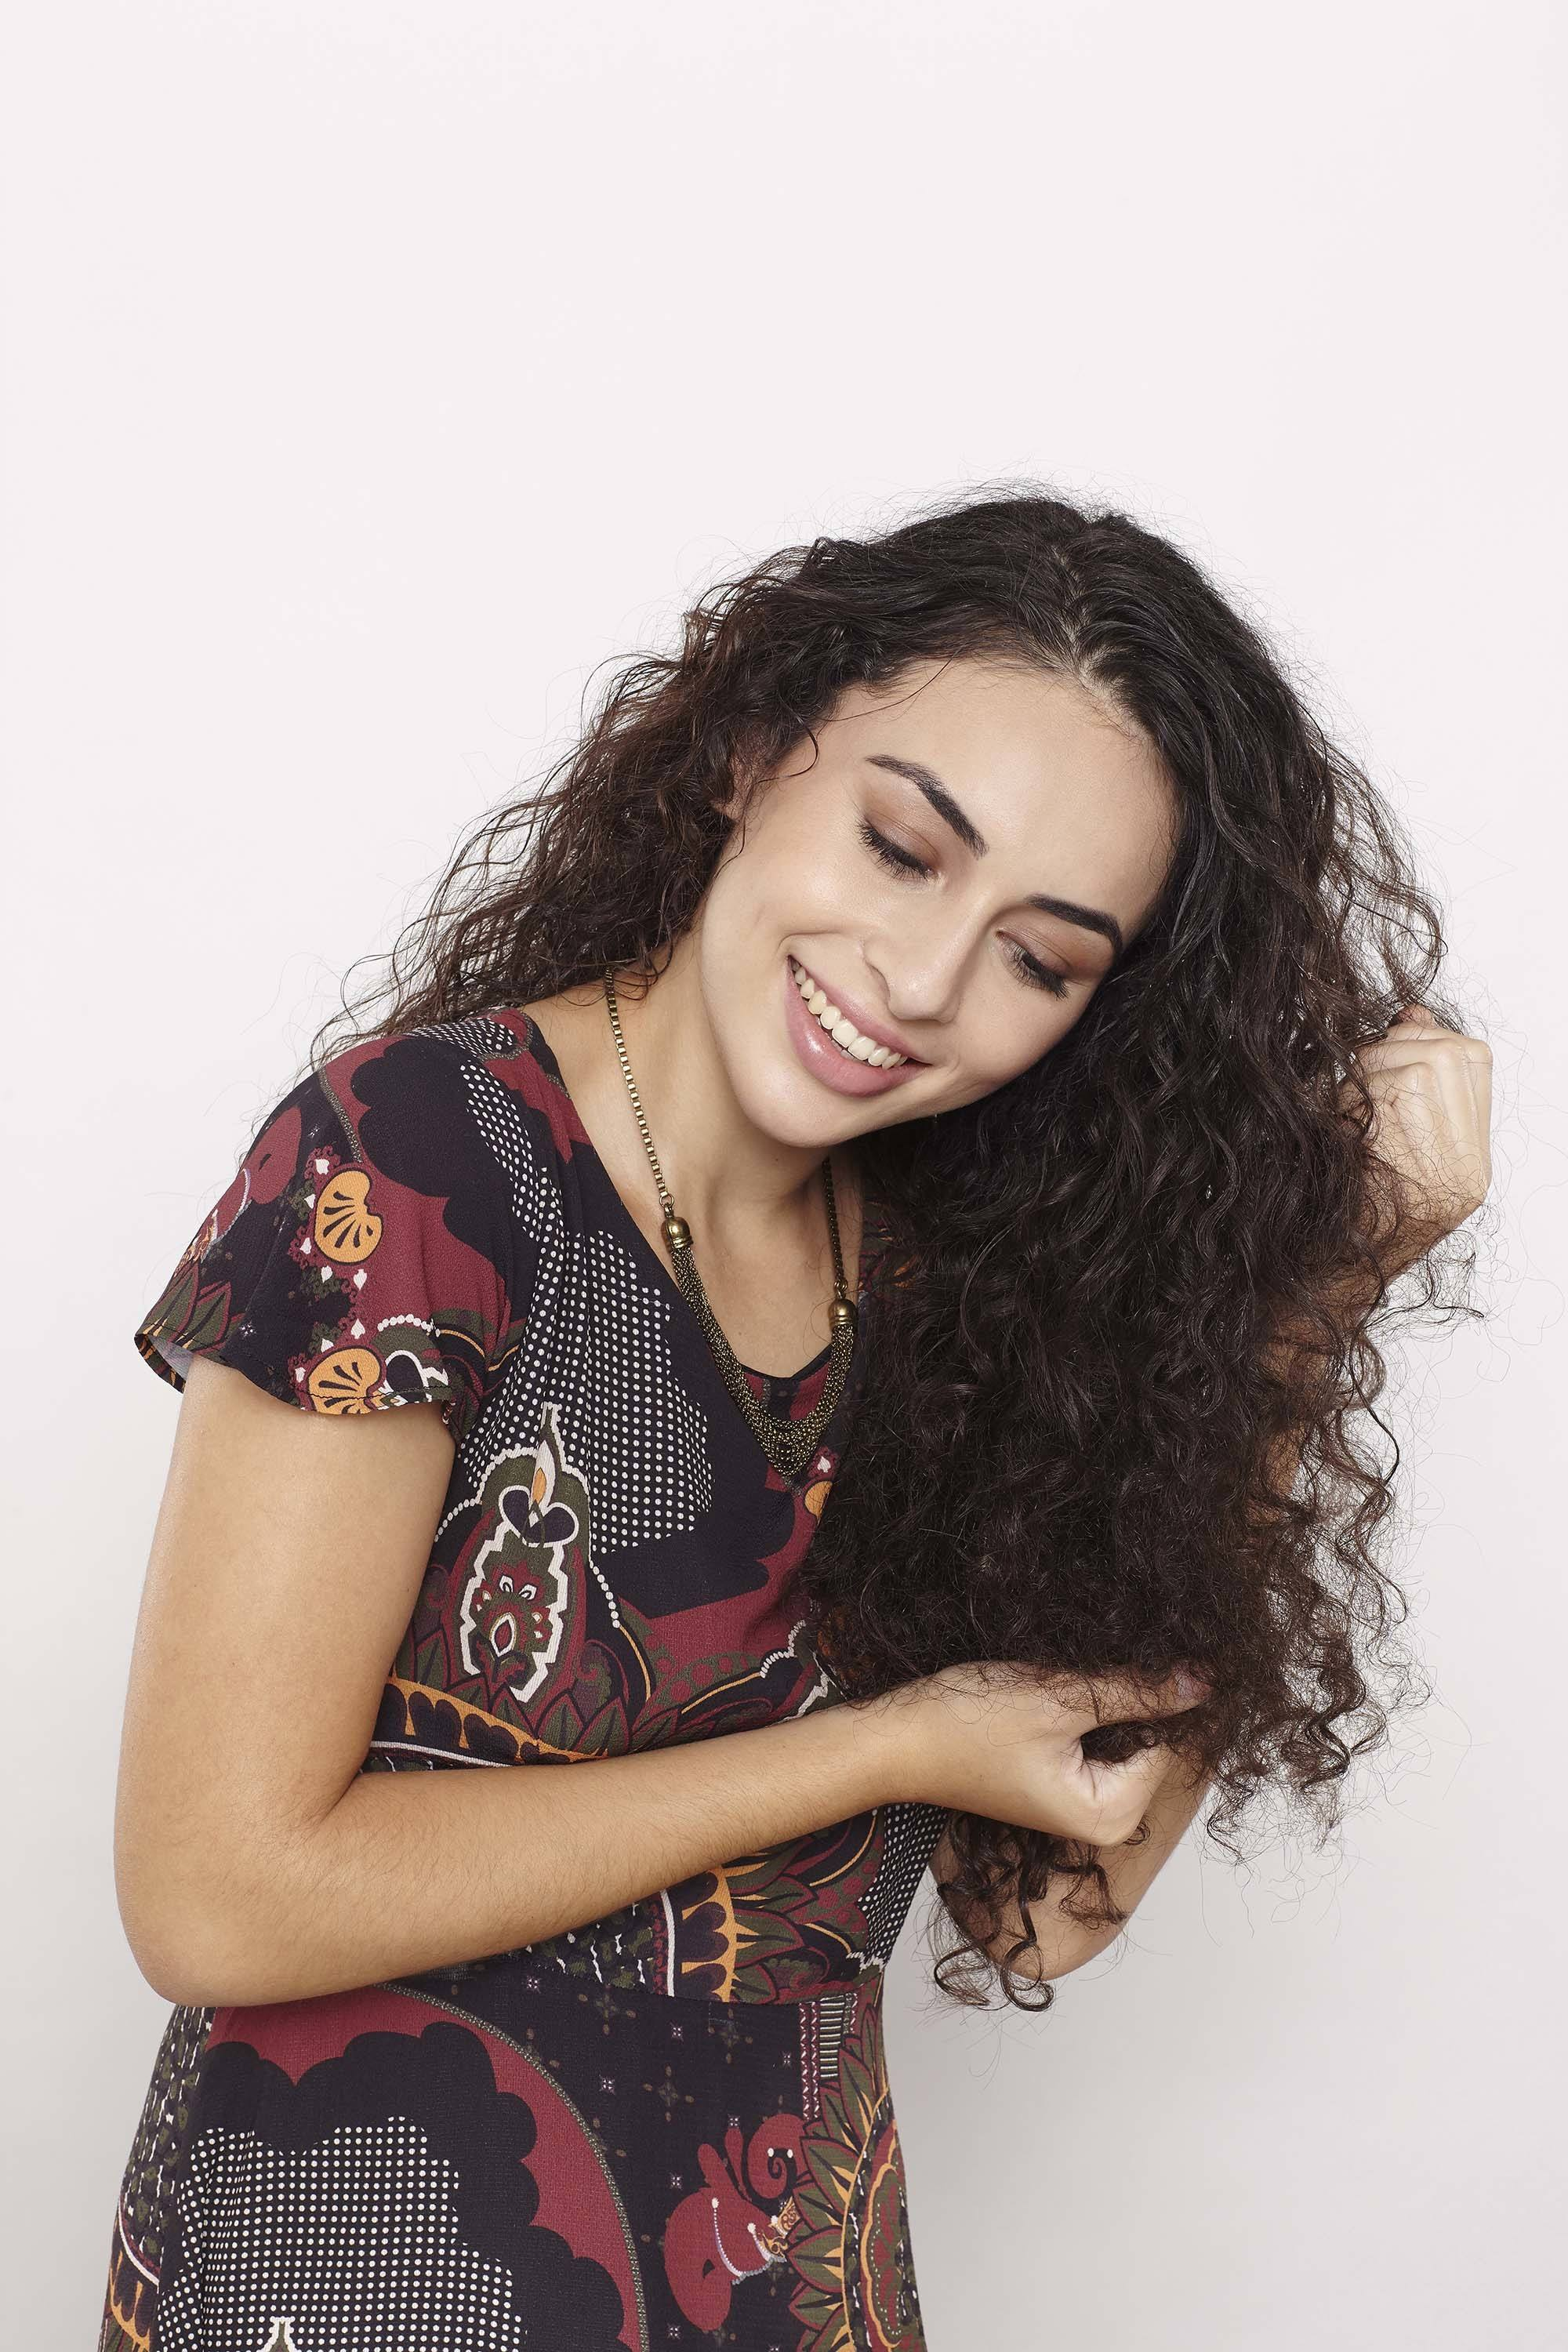 Model wtih long curly brown hair scrunching in hair product to the lengths wearing pattern top